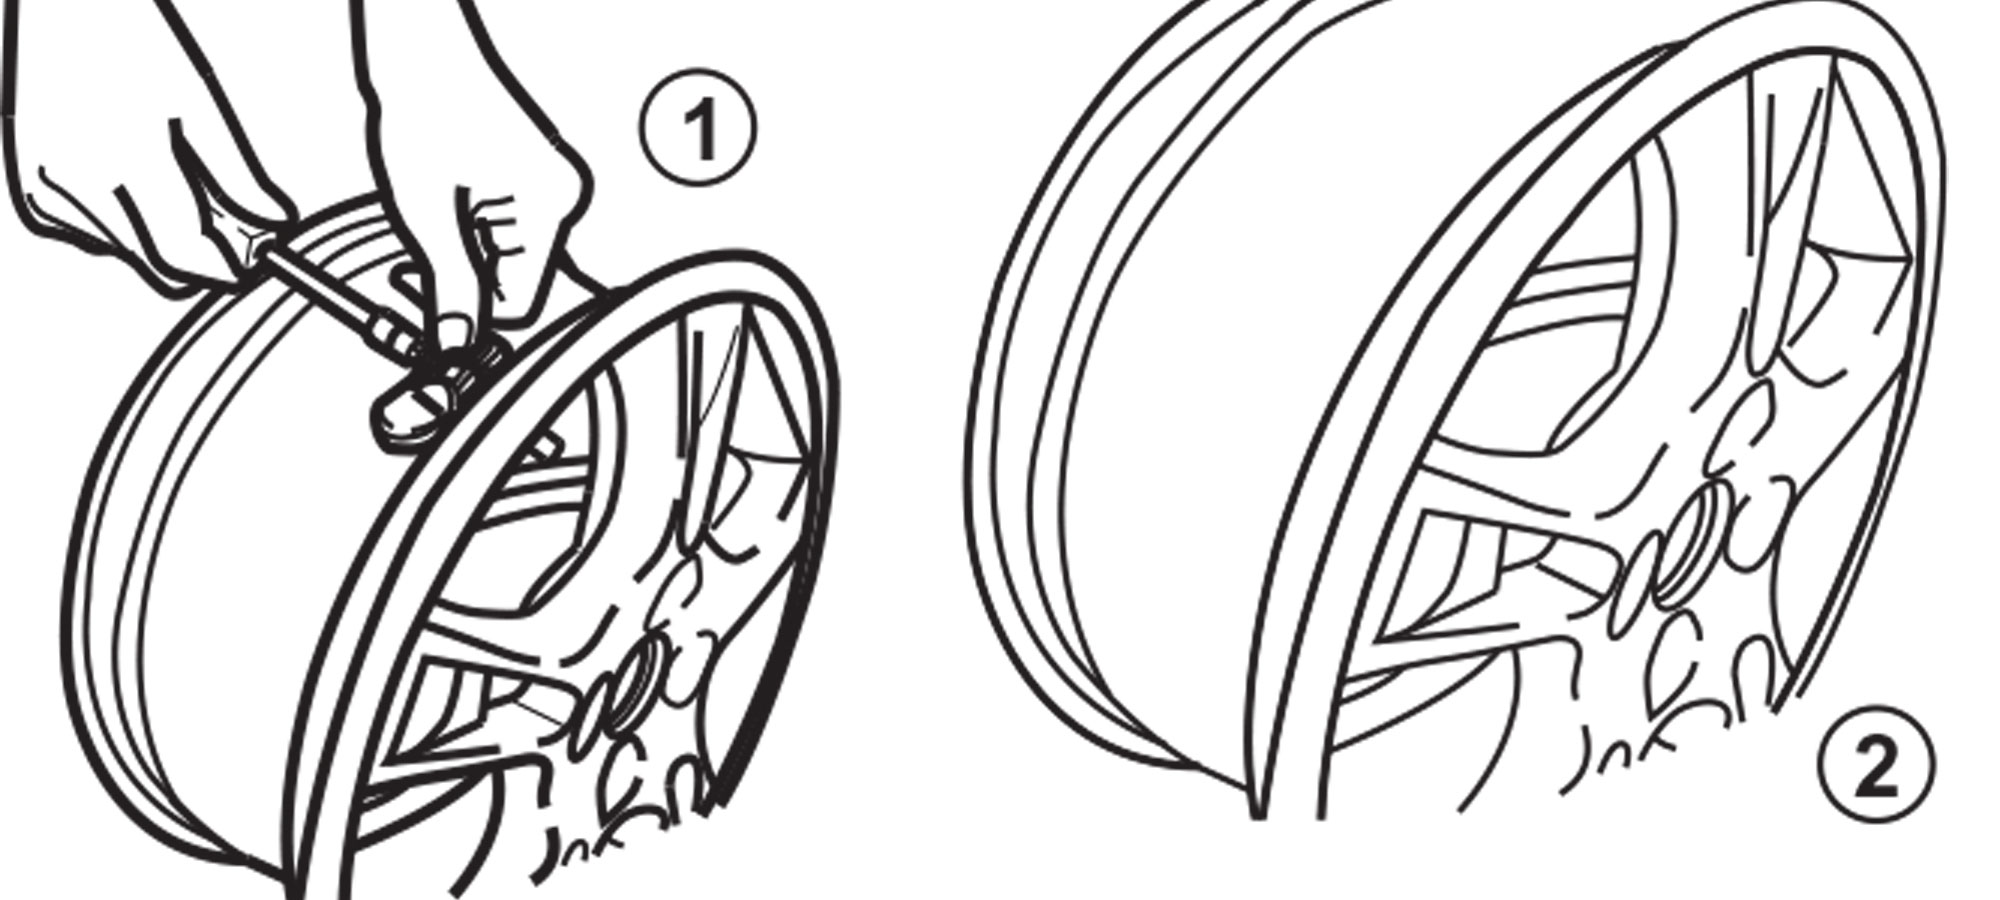 Detach Sensor from Stem, Remove Stem and Inspect the Wheel